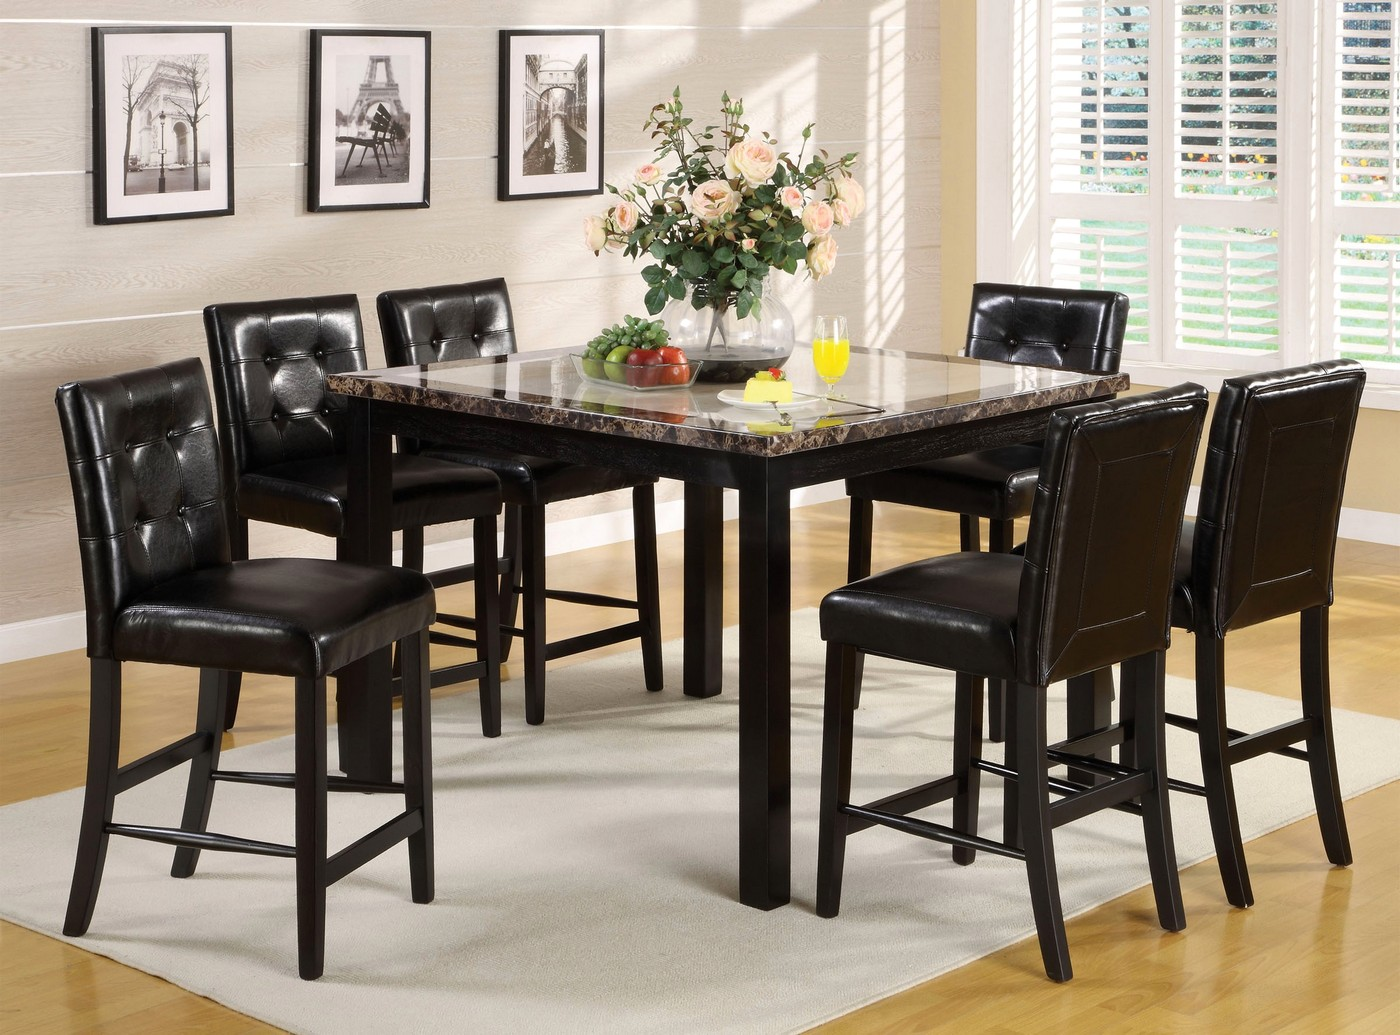 atlas ii contemporary black counter height dining set with leatherette parson chair cm3188pt 47. Black Bedroom Furniture Sets. Home Design Ideas